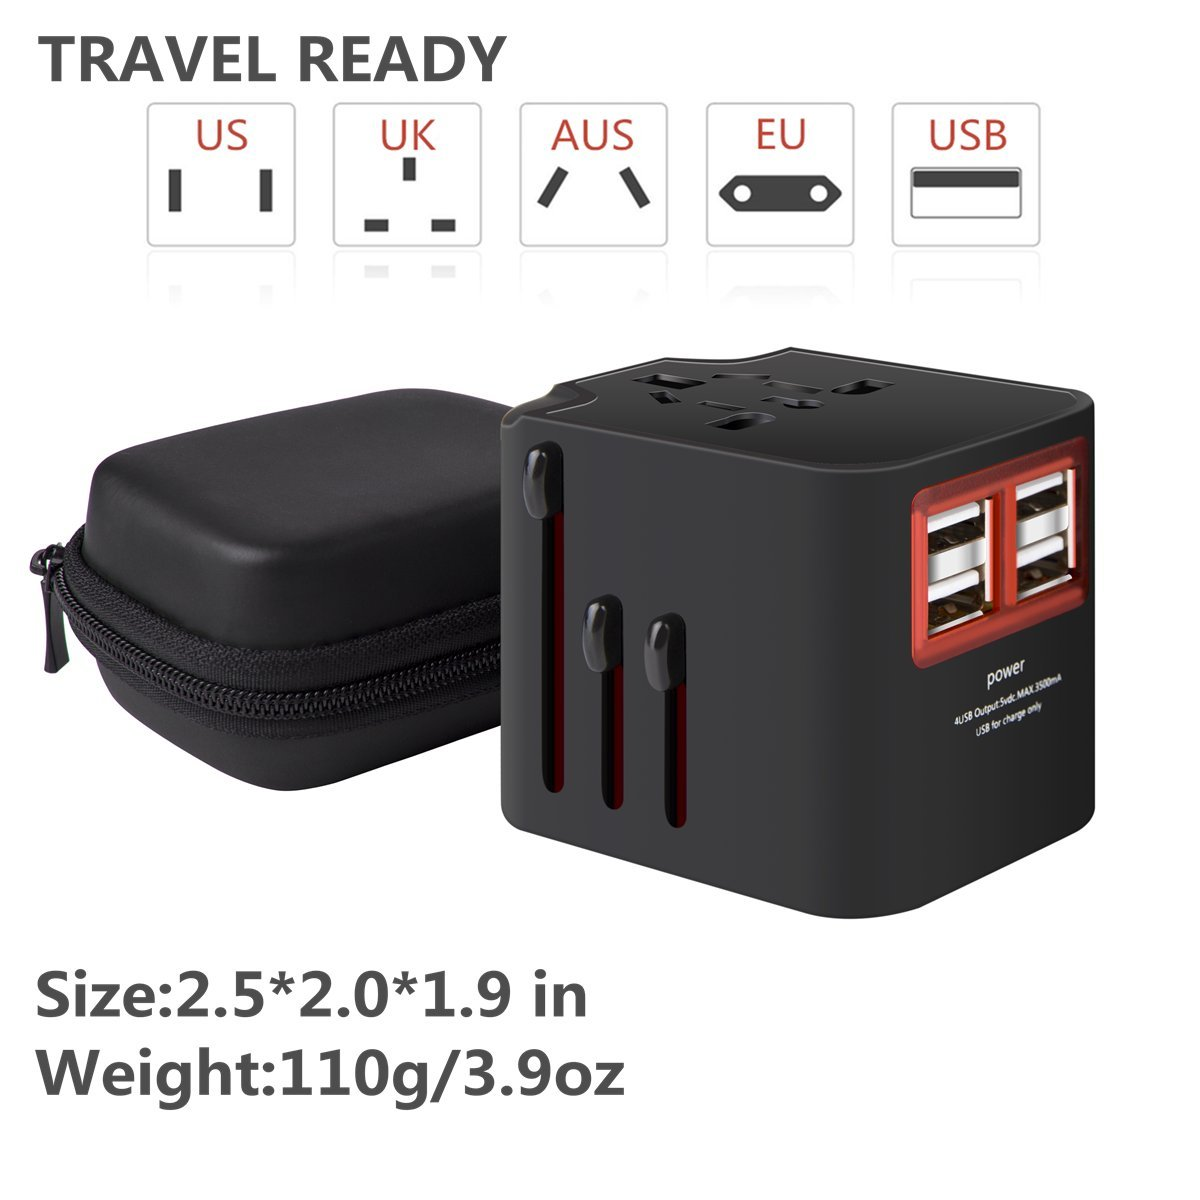 International Travel Adapter, Worldwide Travel Charger with 4 USB Ports Power Converters for EU, UK, US, USA, AU, Europe & Asia, All-in-one Universal Wall Plug Multi-Outlets Electrical Adaptor - Black by YIVIEW (Image #6)